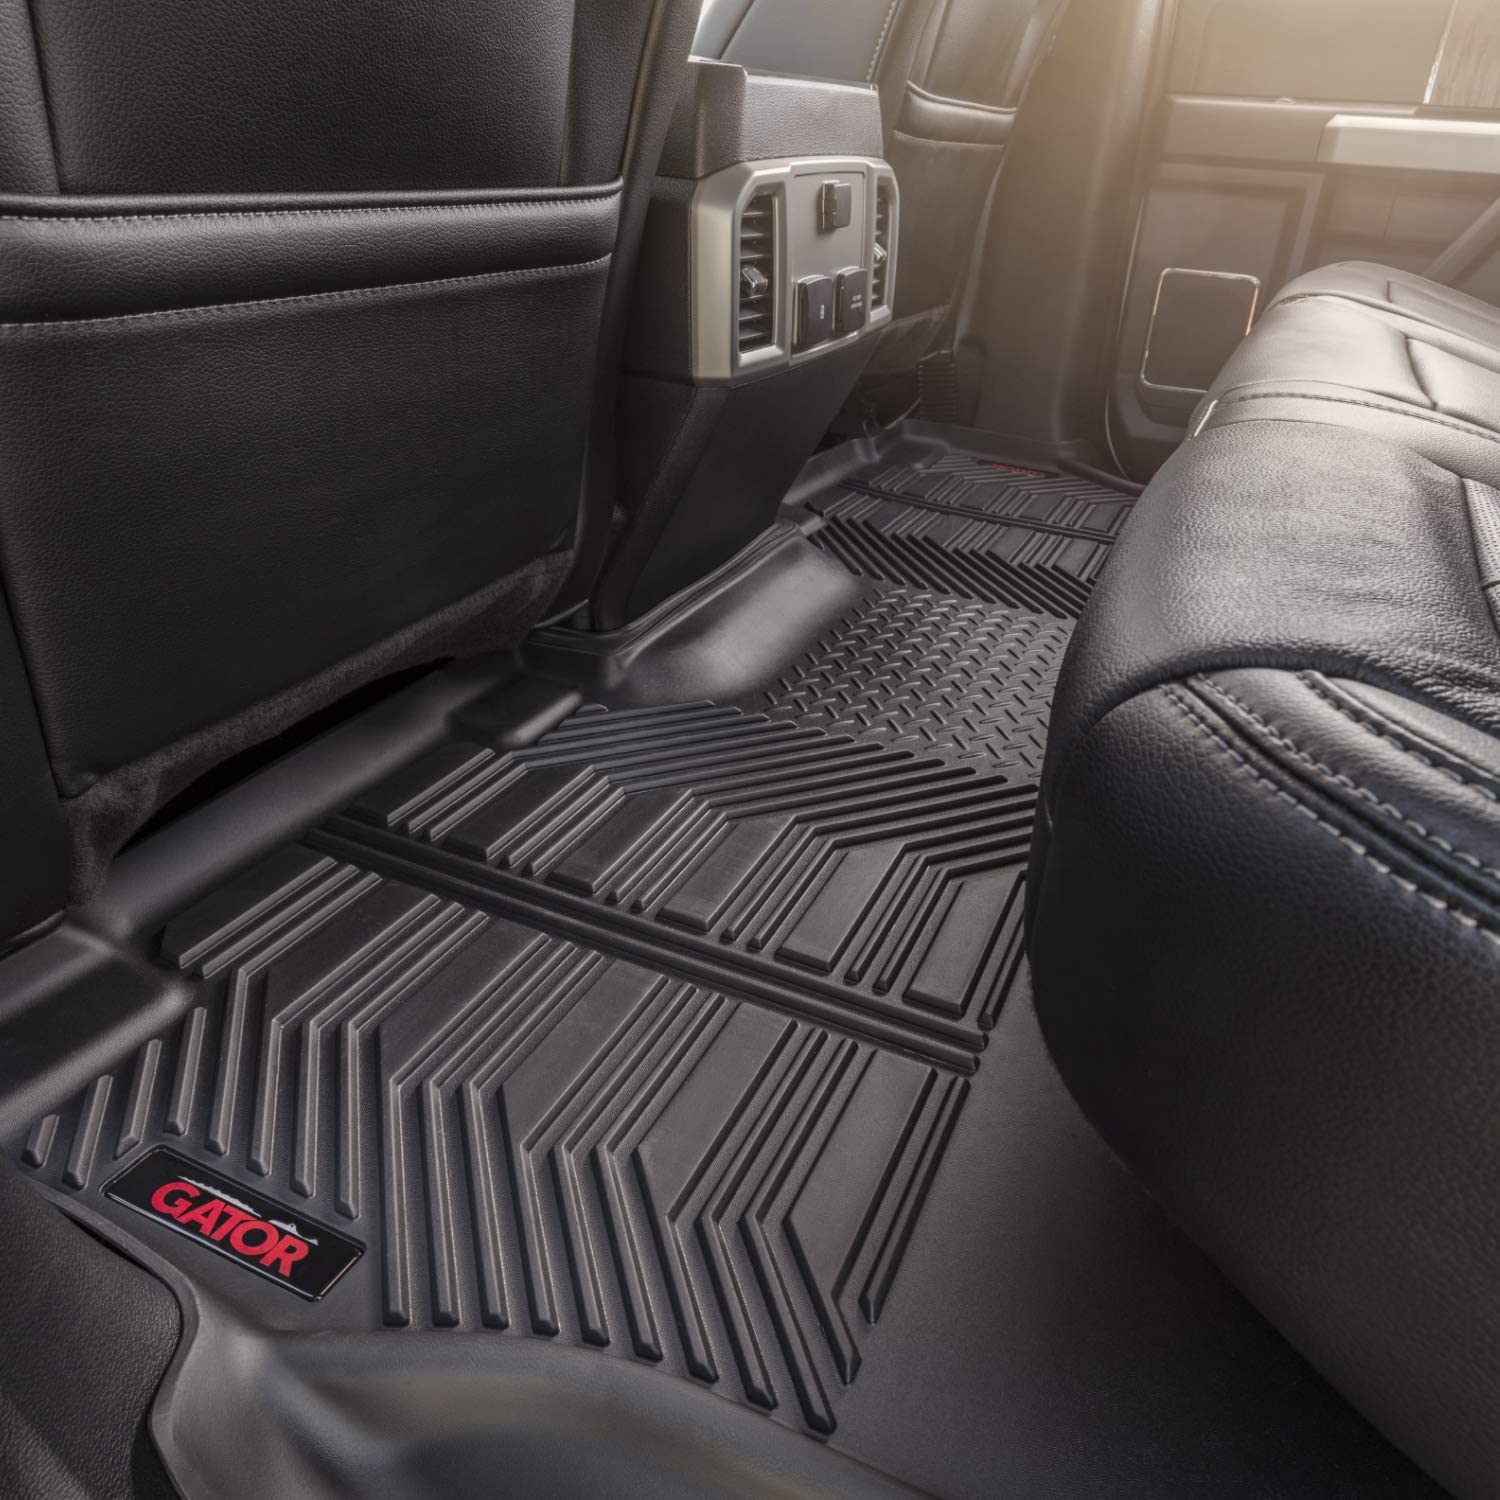 Gator Accessories 79613 Black Fits 2017-20 Ford F-250//F-350 Crew Cab Front Floor Liners